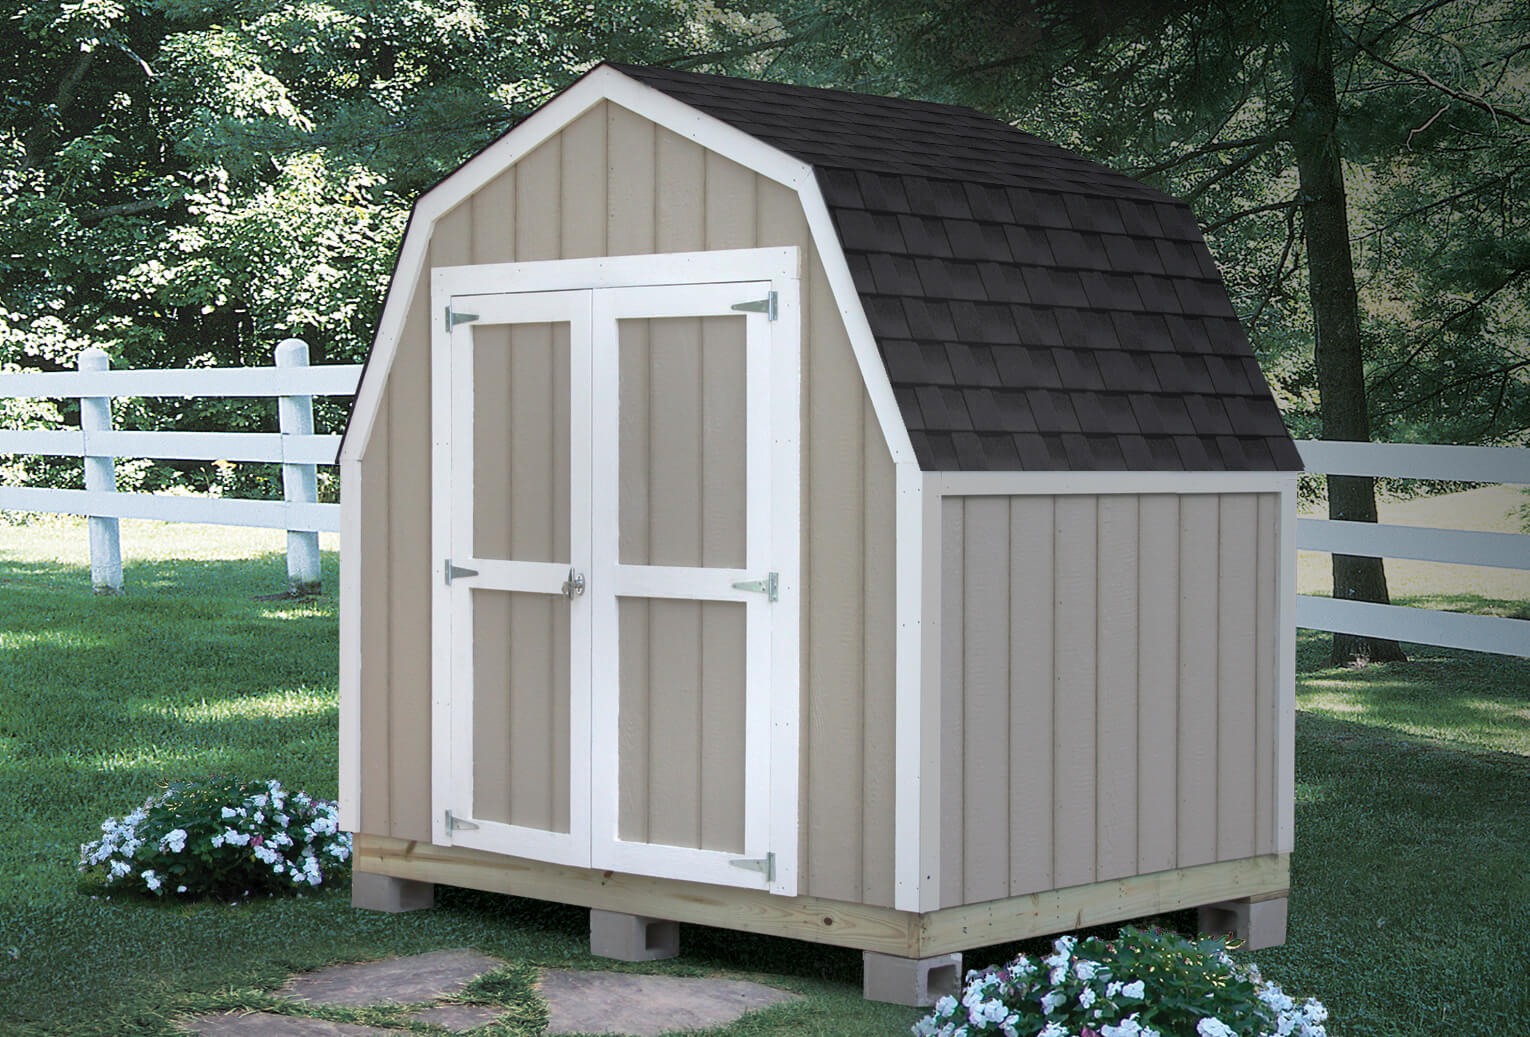 outdoor shed delivered. built. guaranteed. WKANTBY